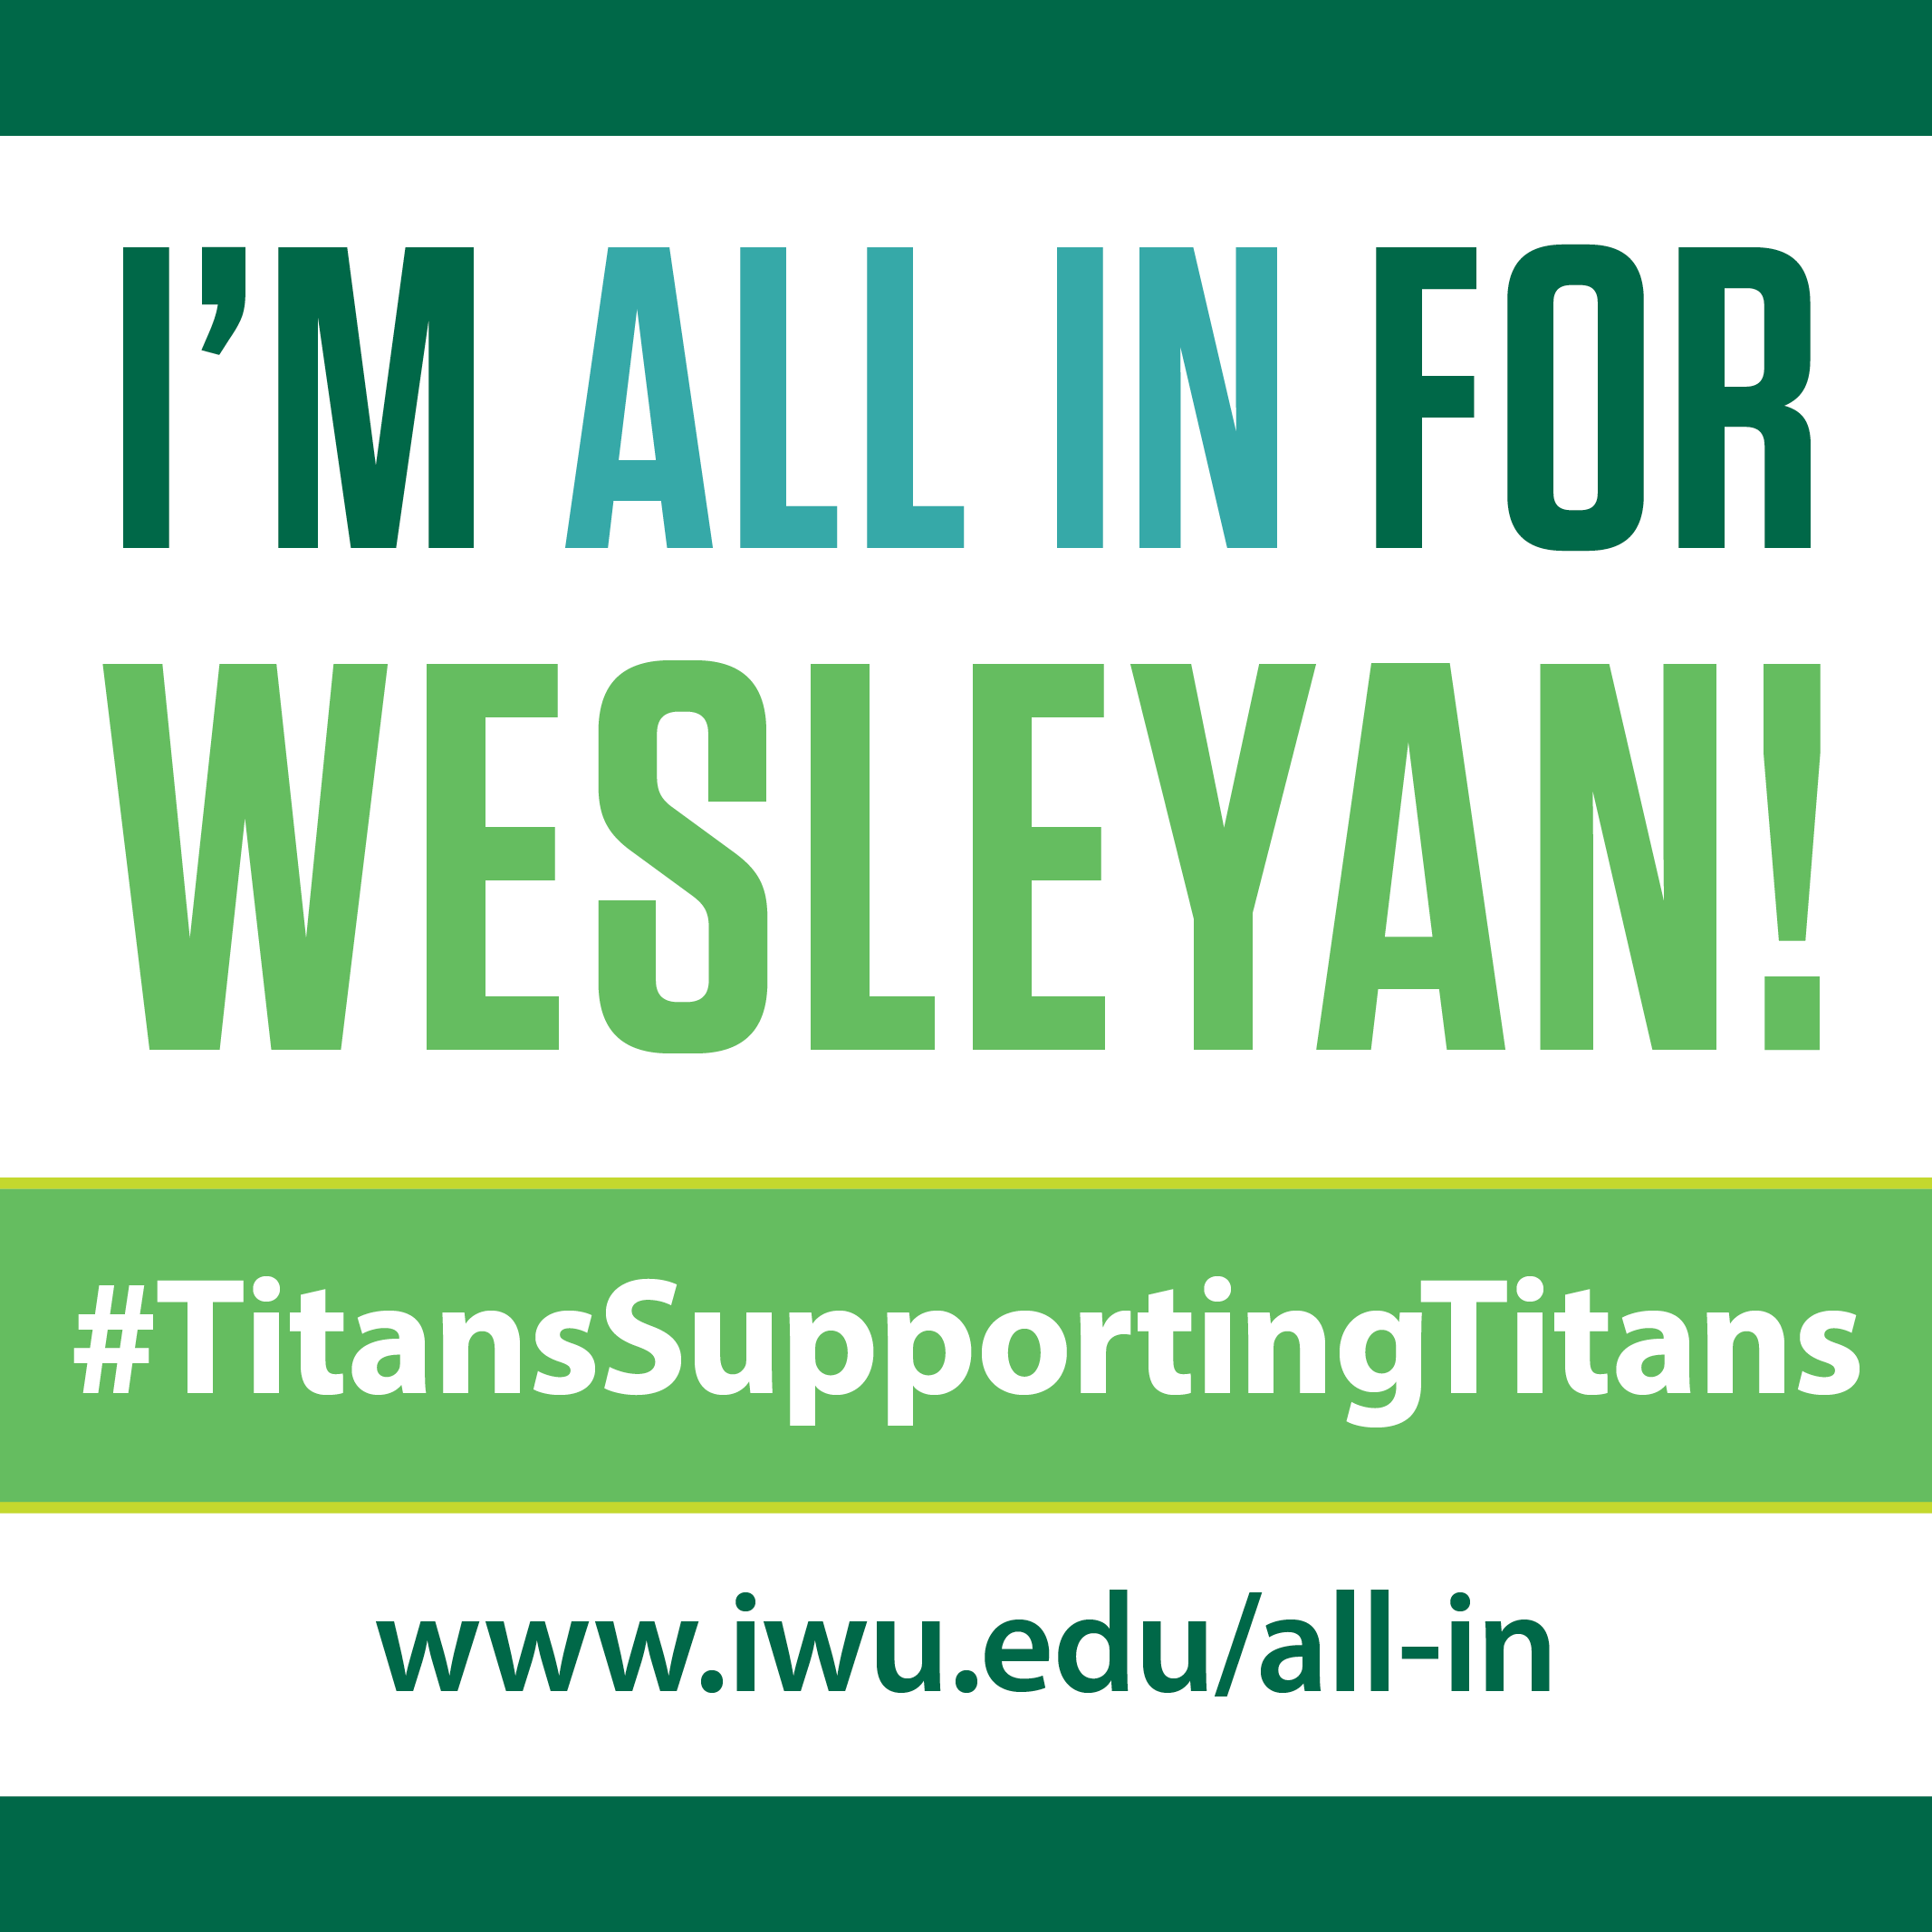 All In for Wesleyan